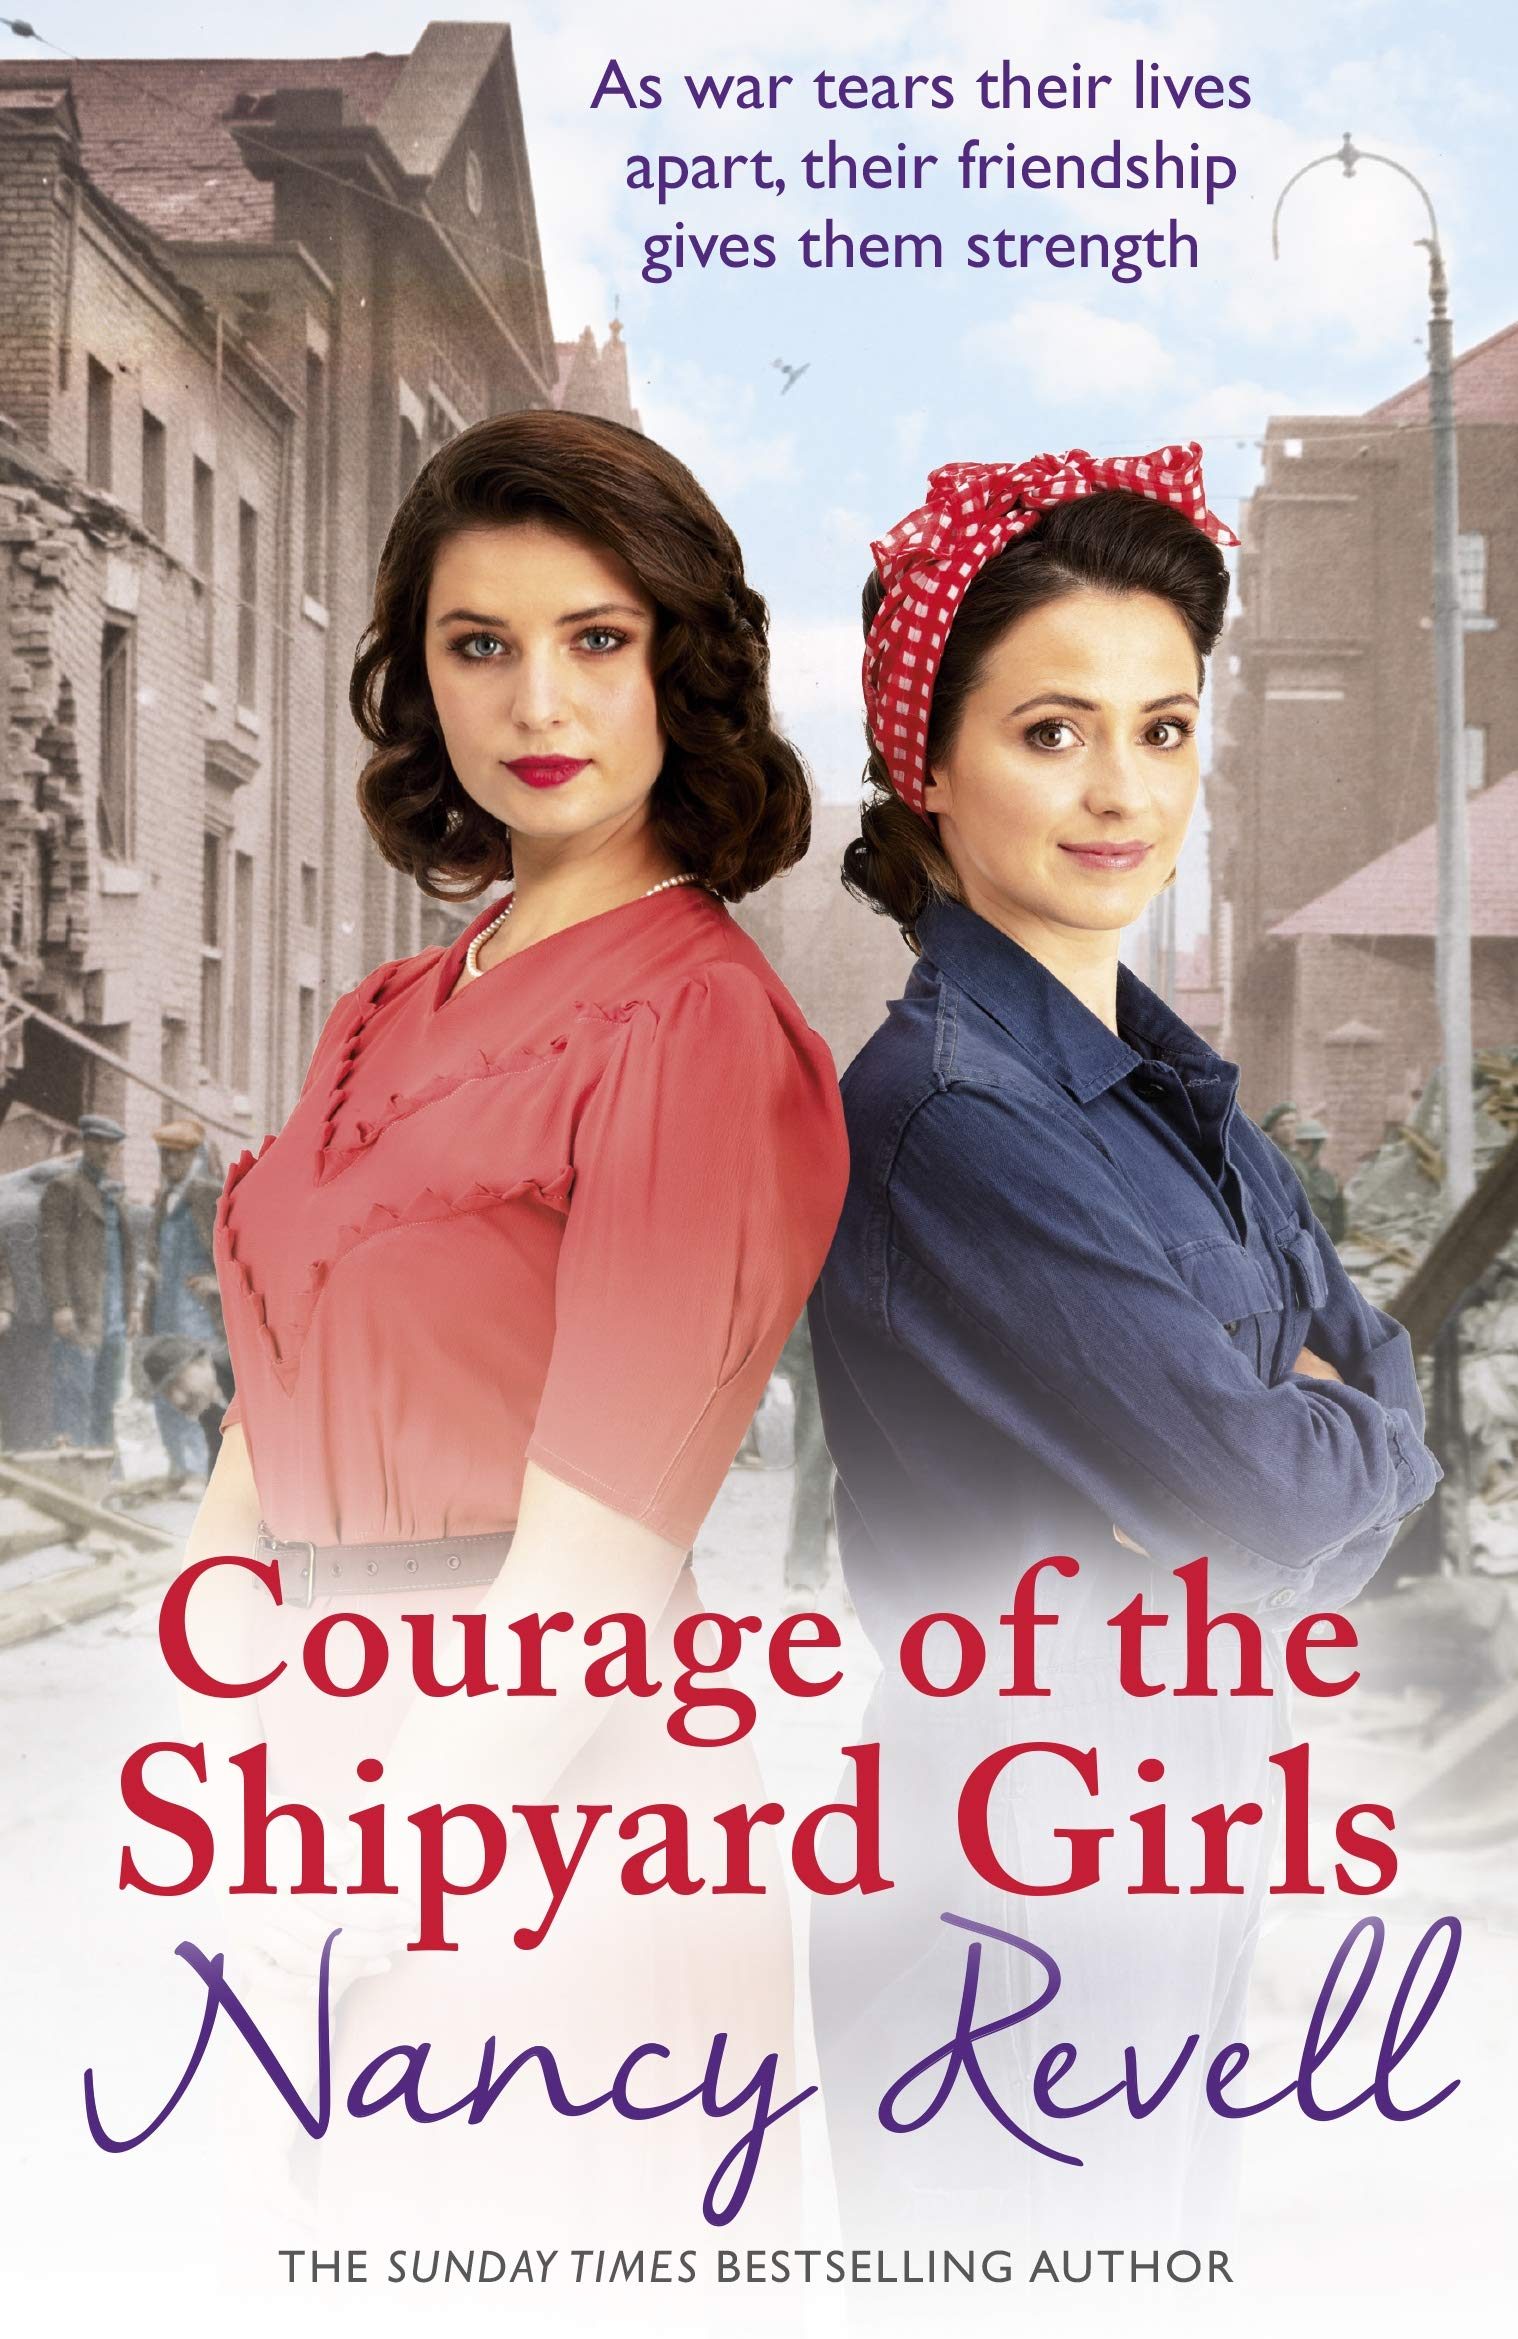 Courage of the Shipyard Girls: Shipyard Girls 6 (The Shipyard Girls  Series): Amazon.co.uk: Revell, Nancy: 9781787460843: Books